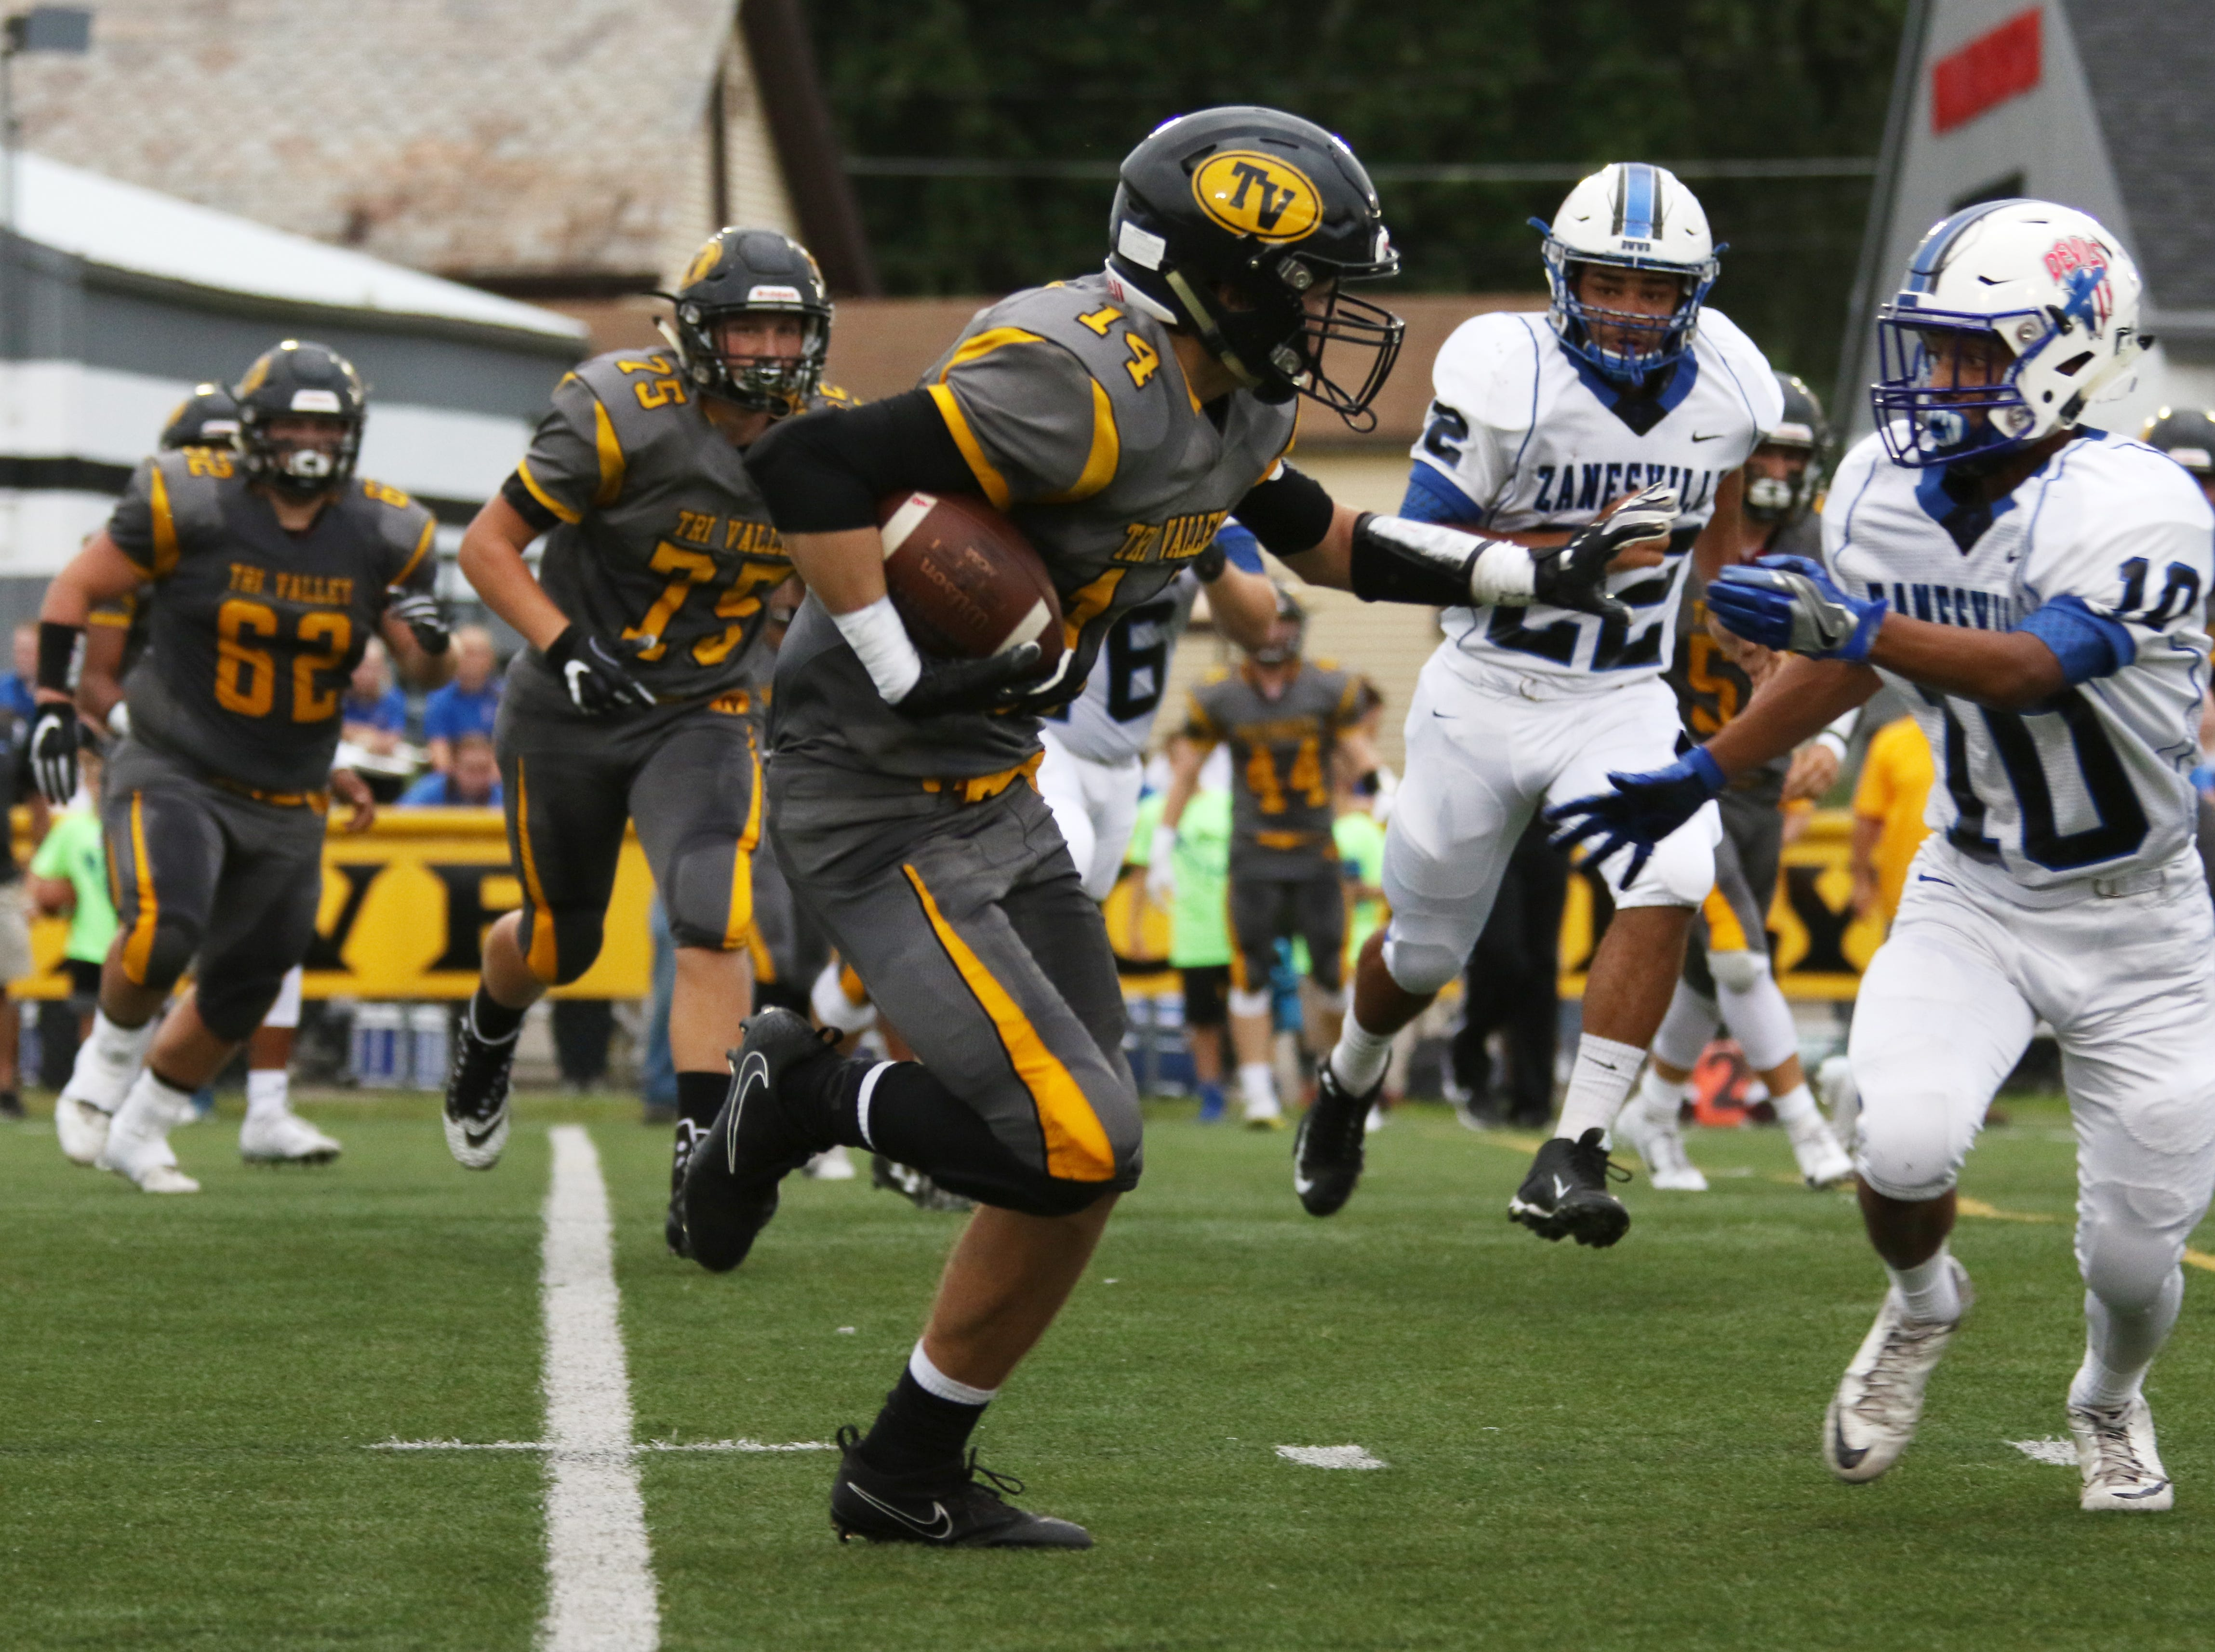 Tri-Valley's Keaton Williams carries the ball against Zanesville.